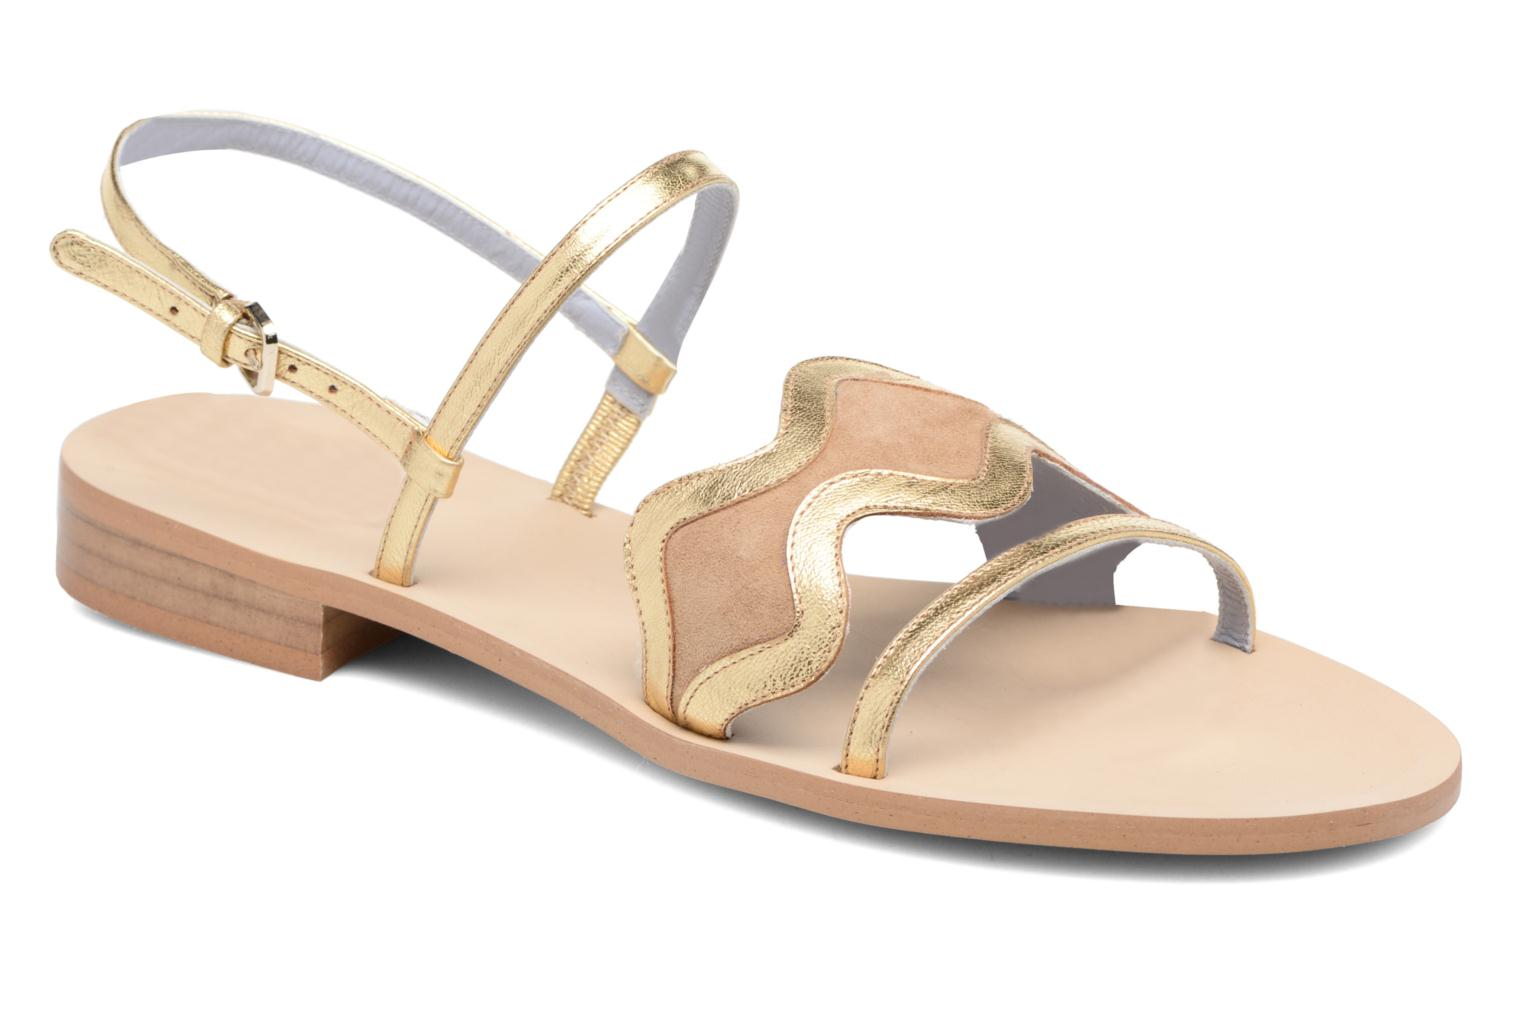 Marques Chaussure luxe femme Apologie femme AZAHAR Yellow